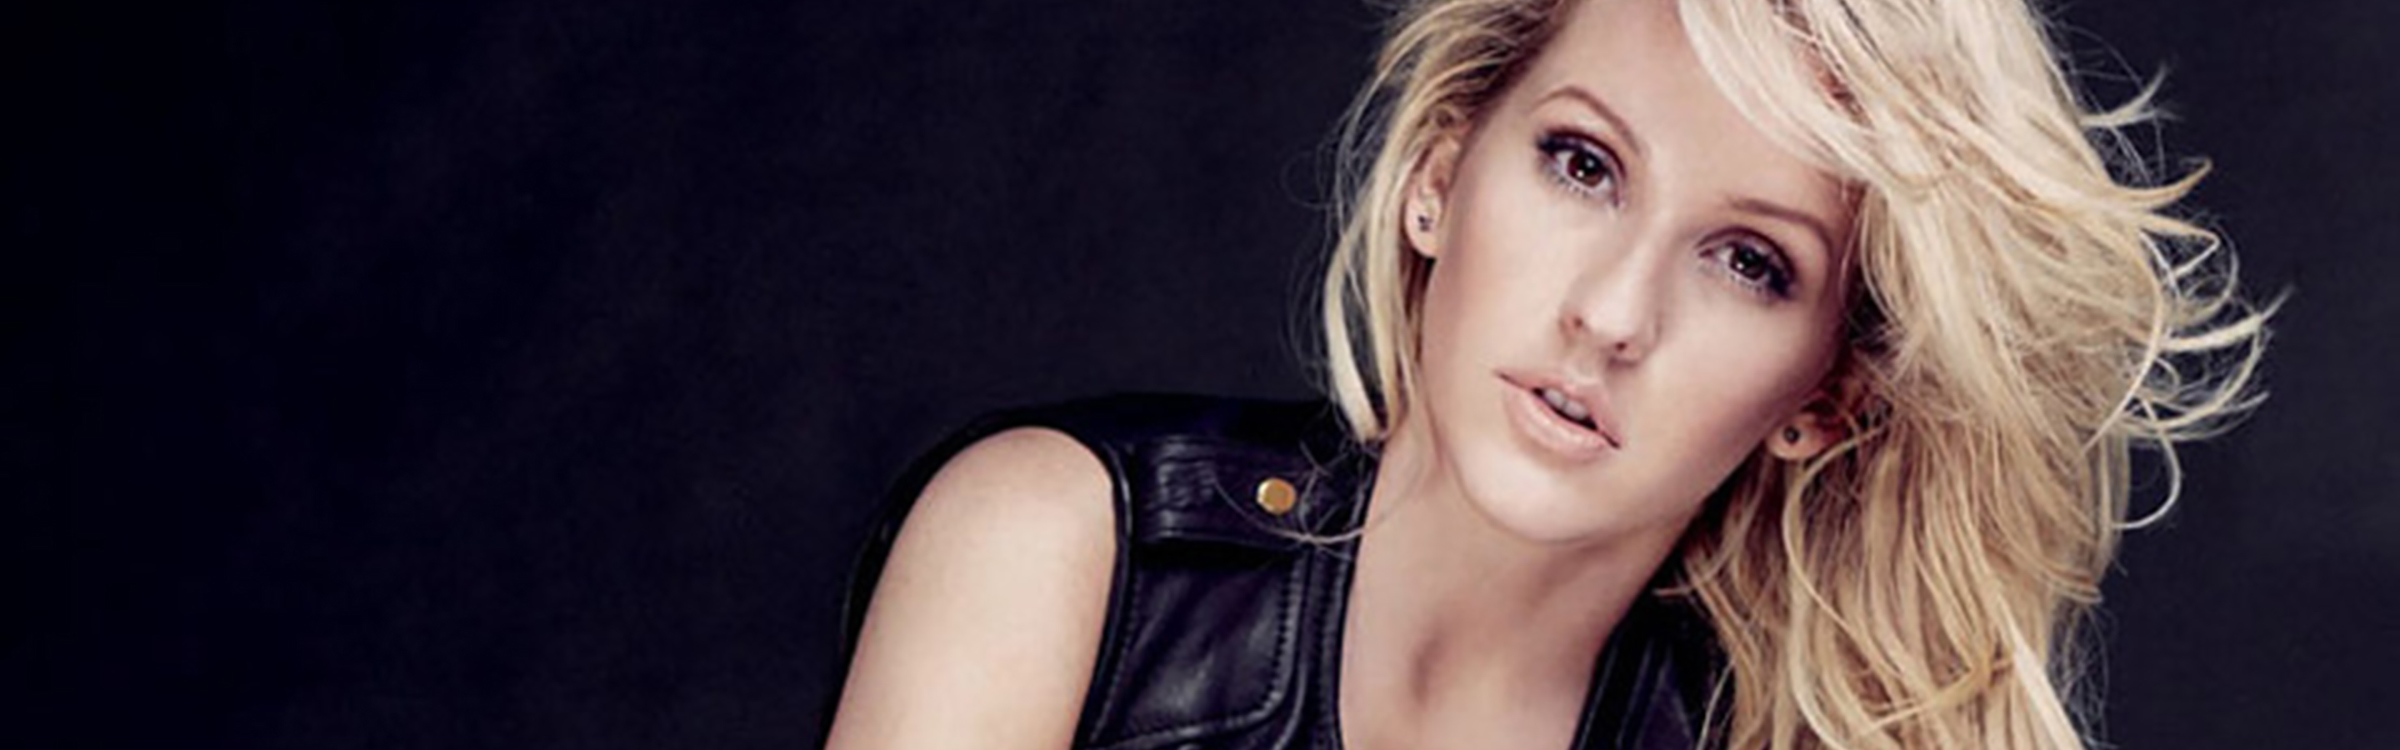 Ellie goulding header